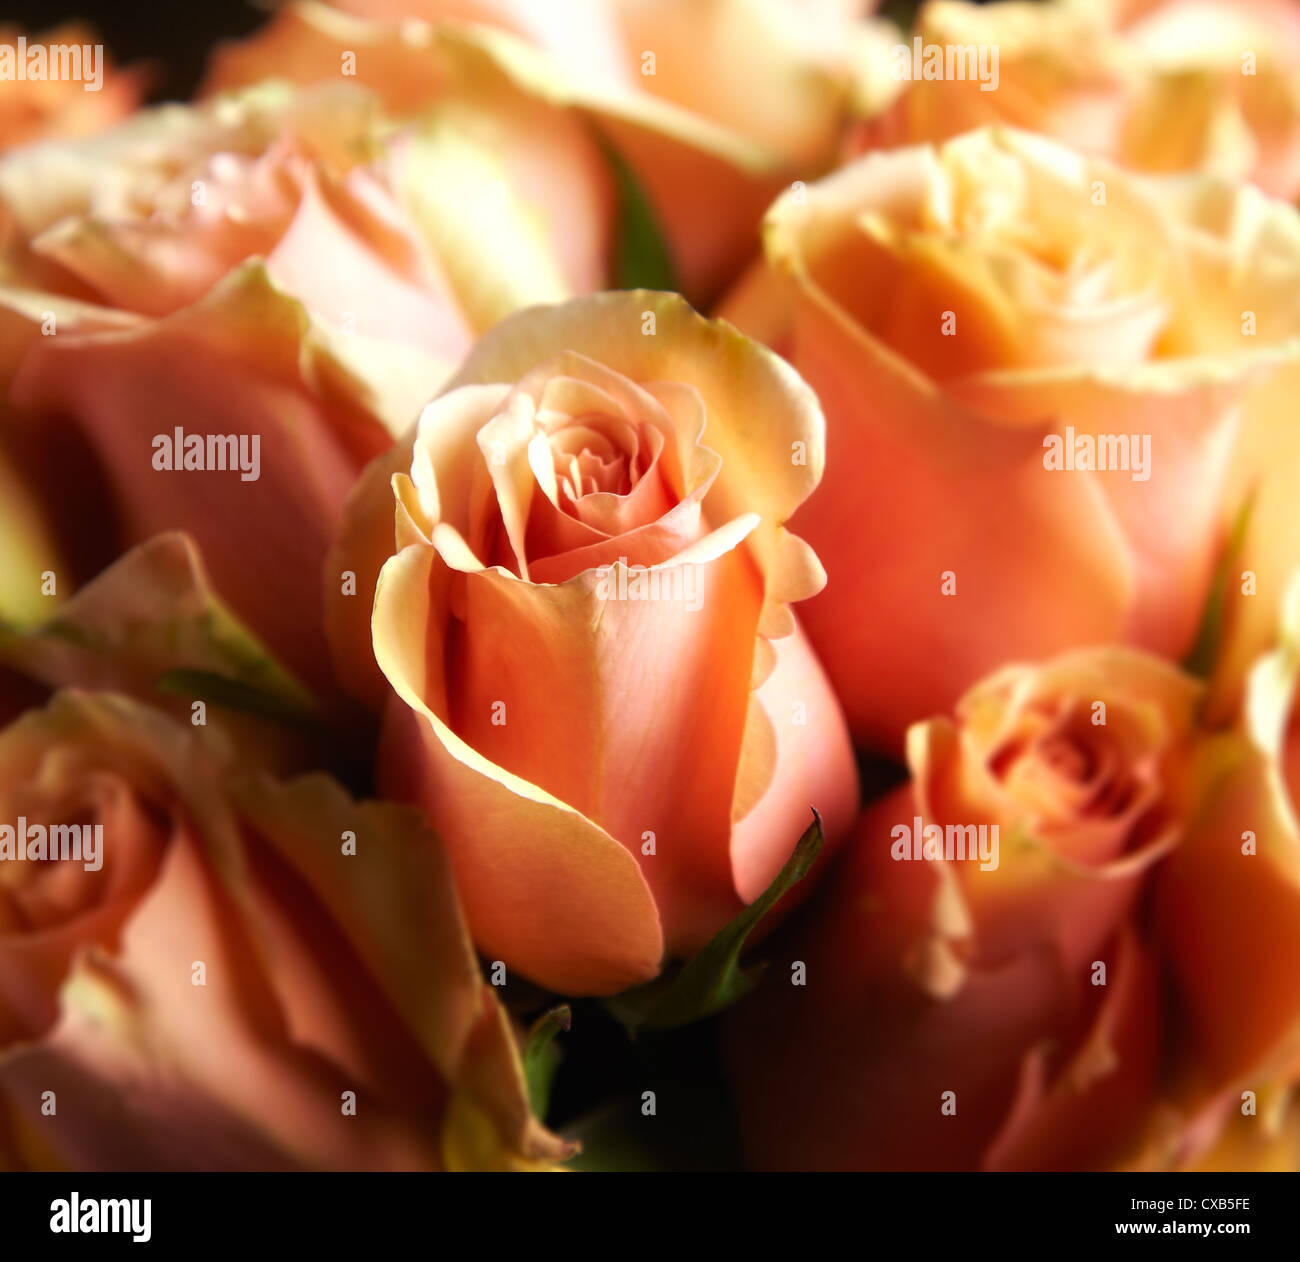 A Close Up of Peach, Tangelic Roses - Stock Image